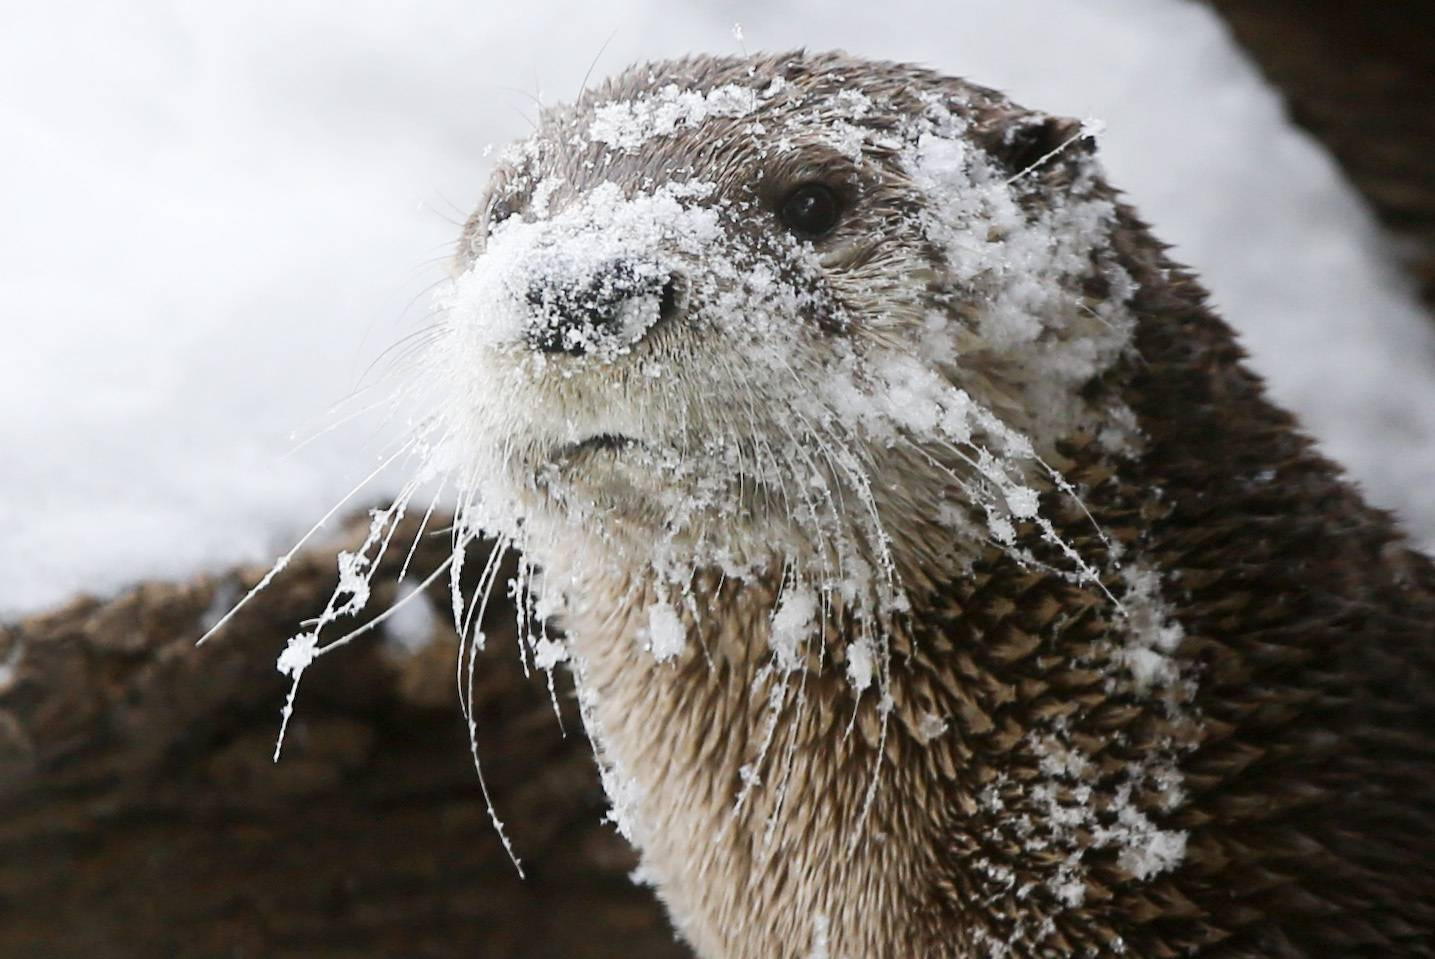 A river otter at the Sedgwick County Zoo is covered in snow after playing with a snowman created on Wednesday, Feb. 5, 2014, in Wichita, Kan.